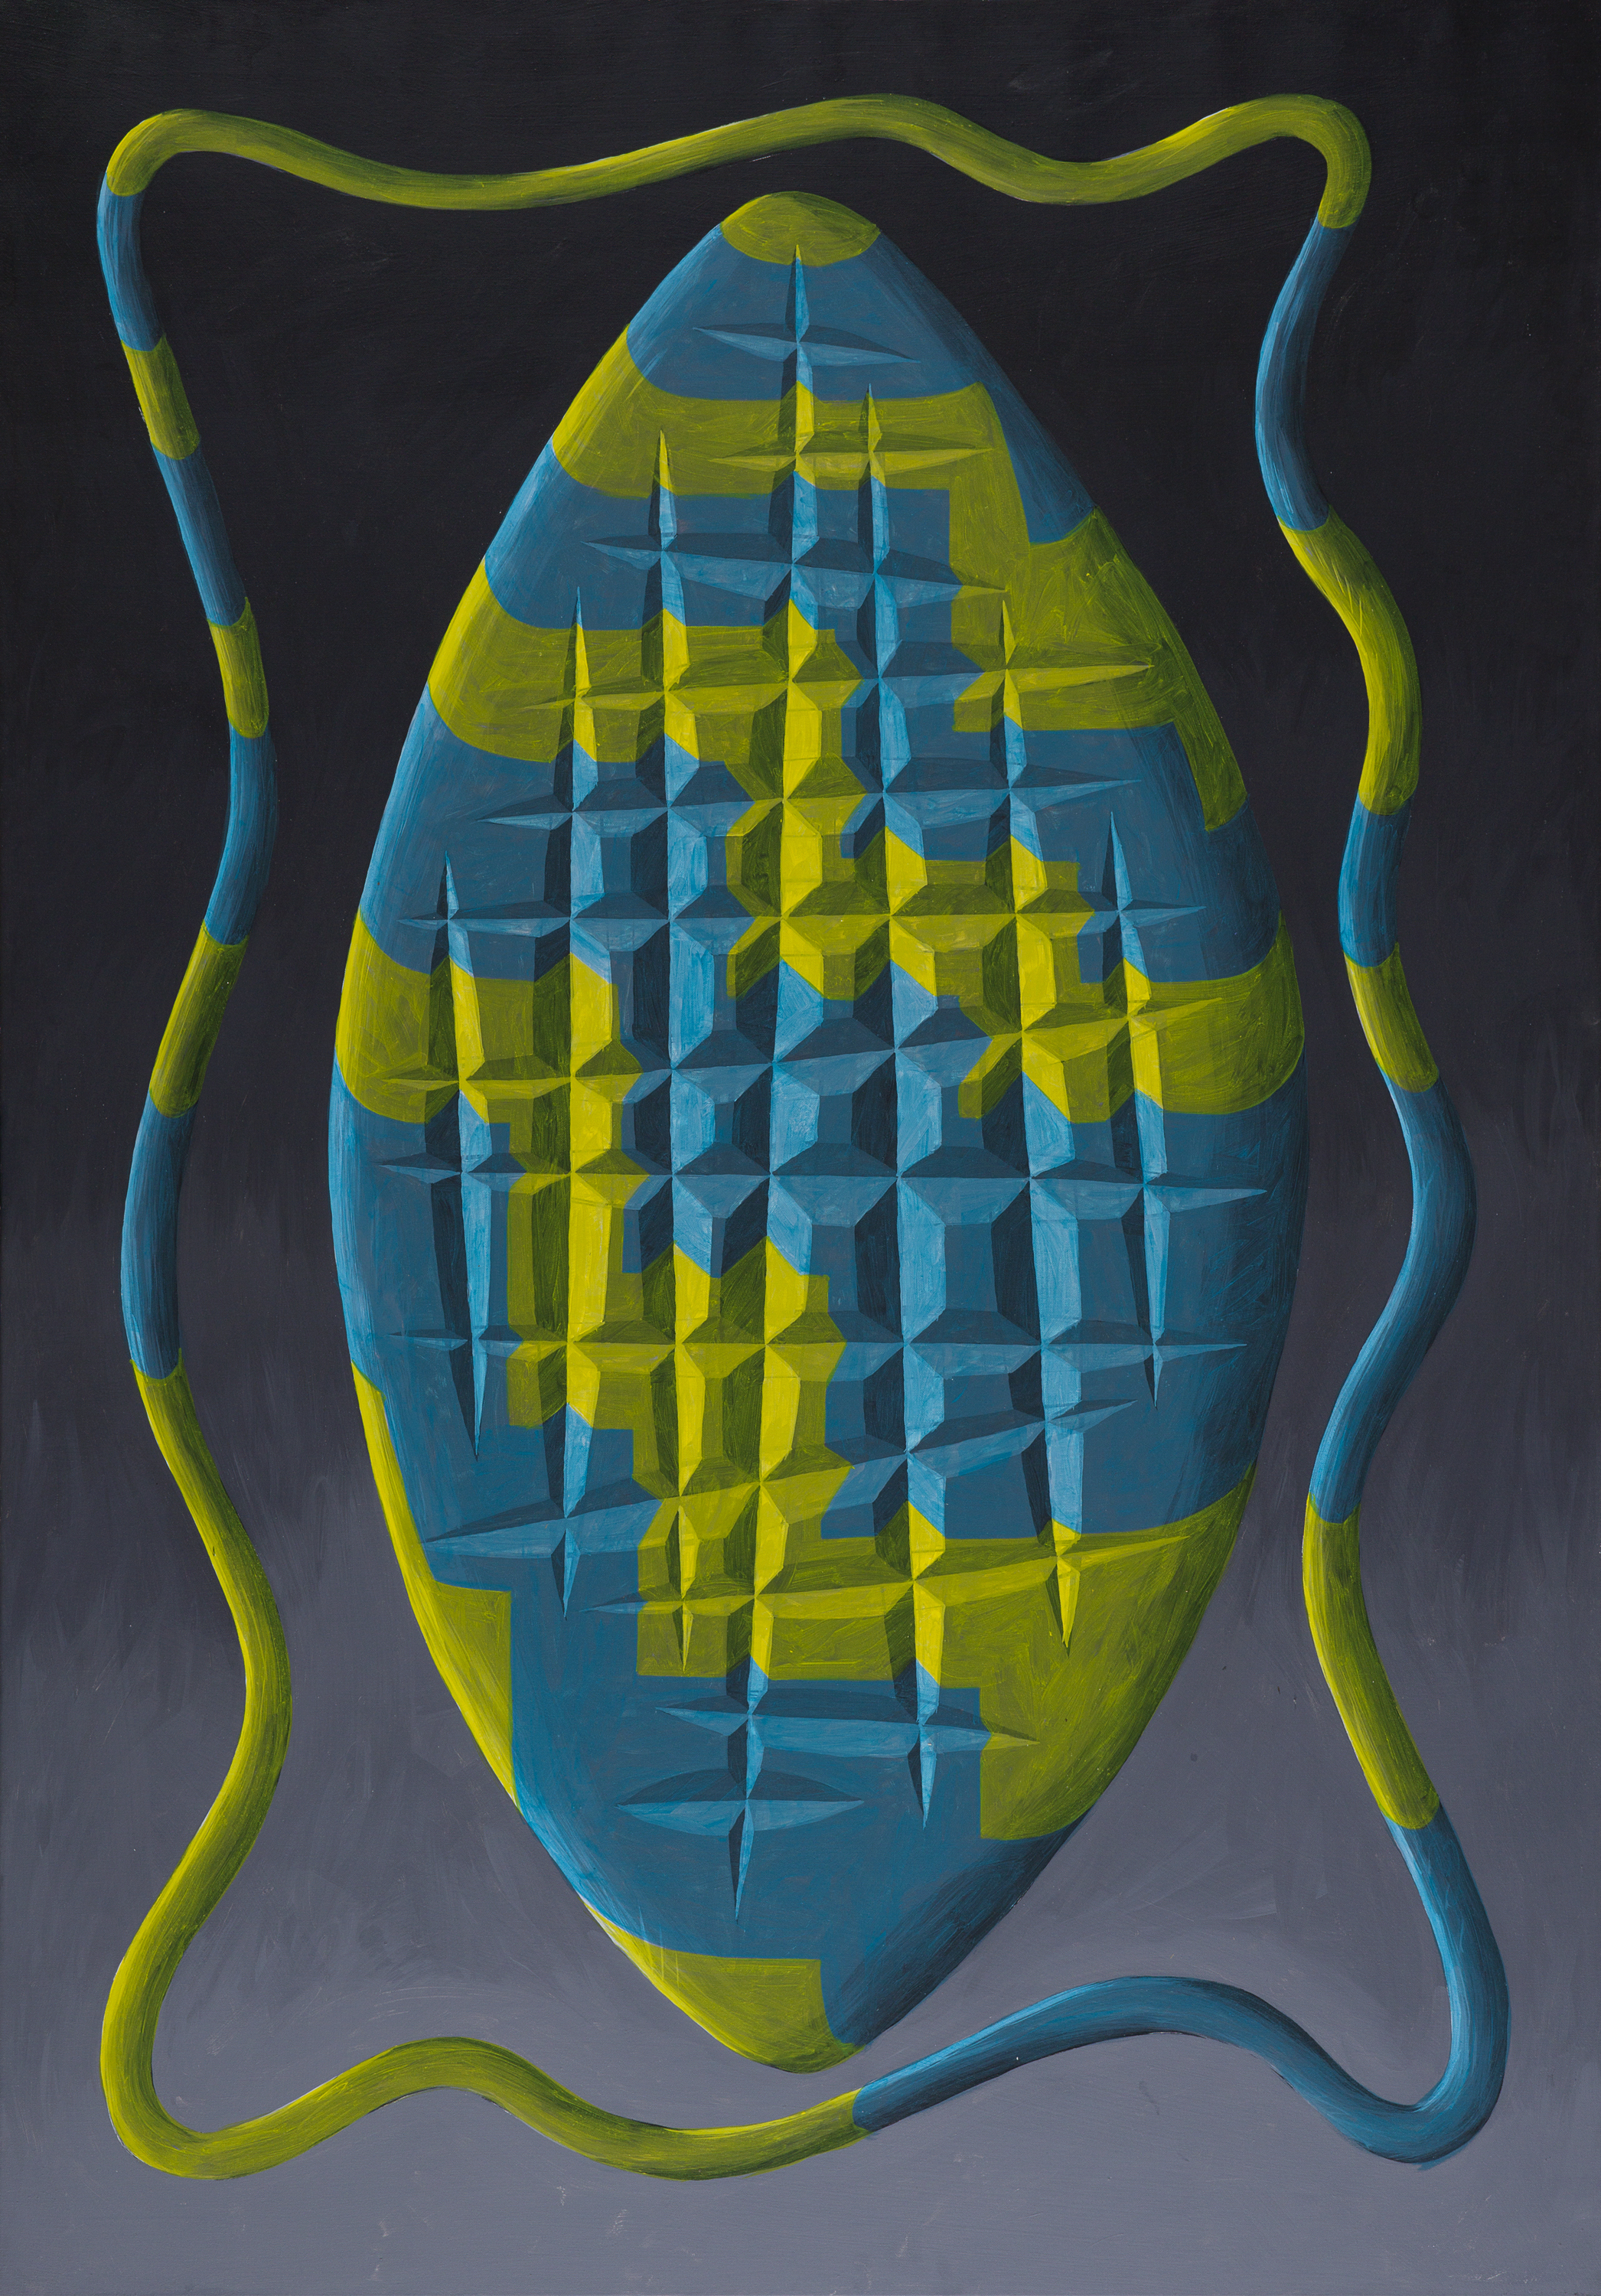 Peter Schuyff   Kali II  1984 Acrylic on canvas 168 x 117 cm